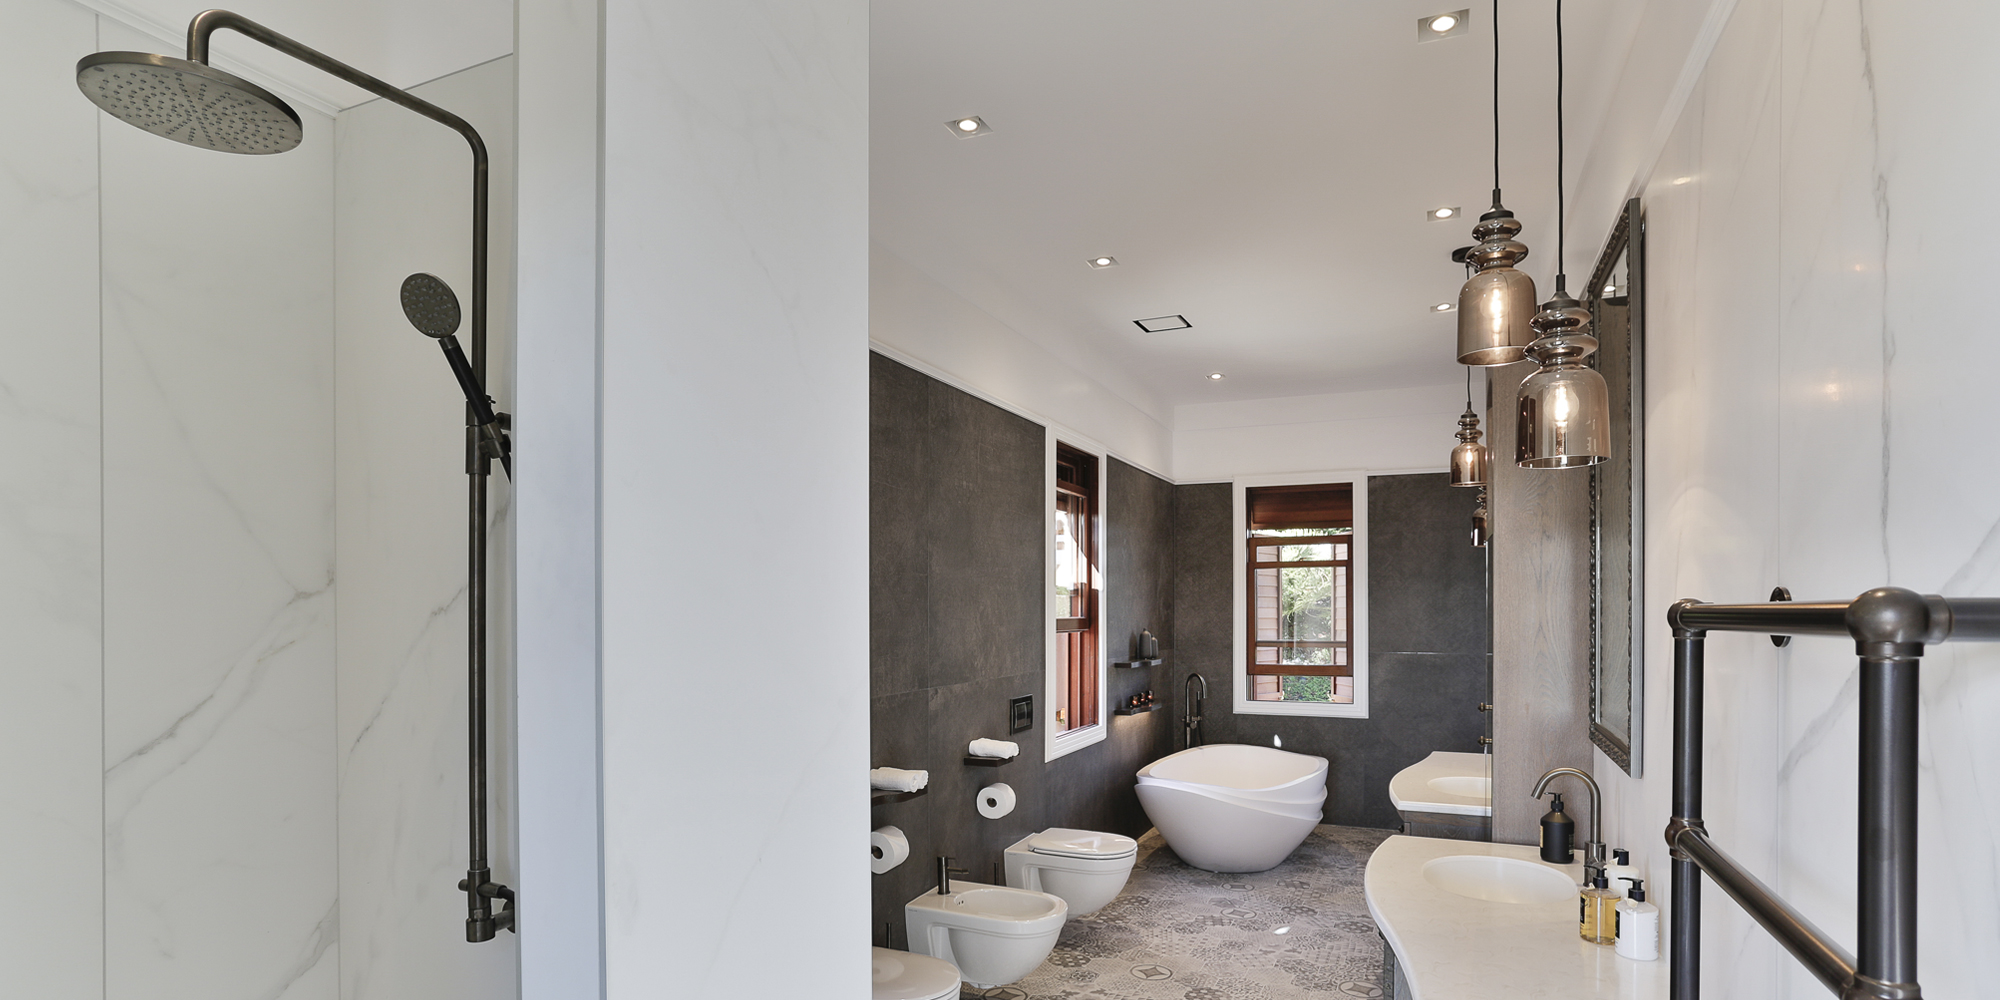 KBD-Italianate-Bathroom-1.jpg